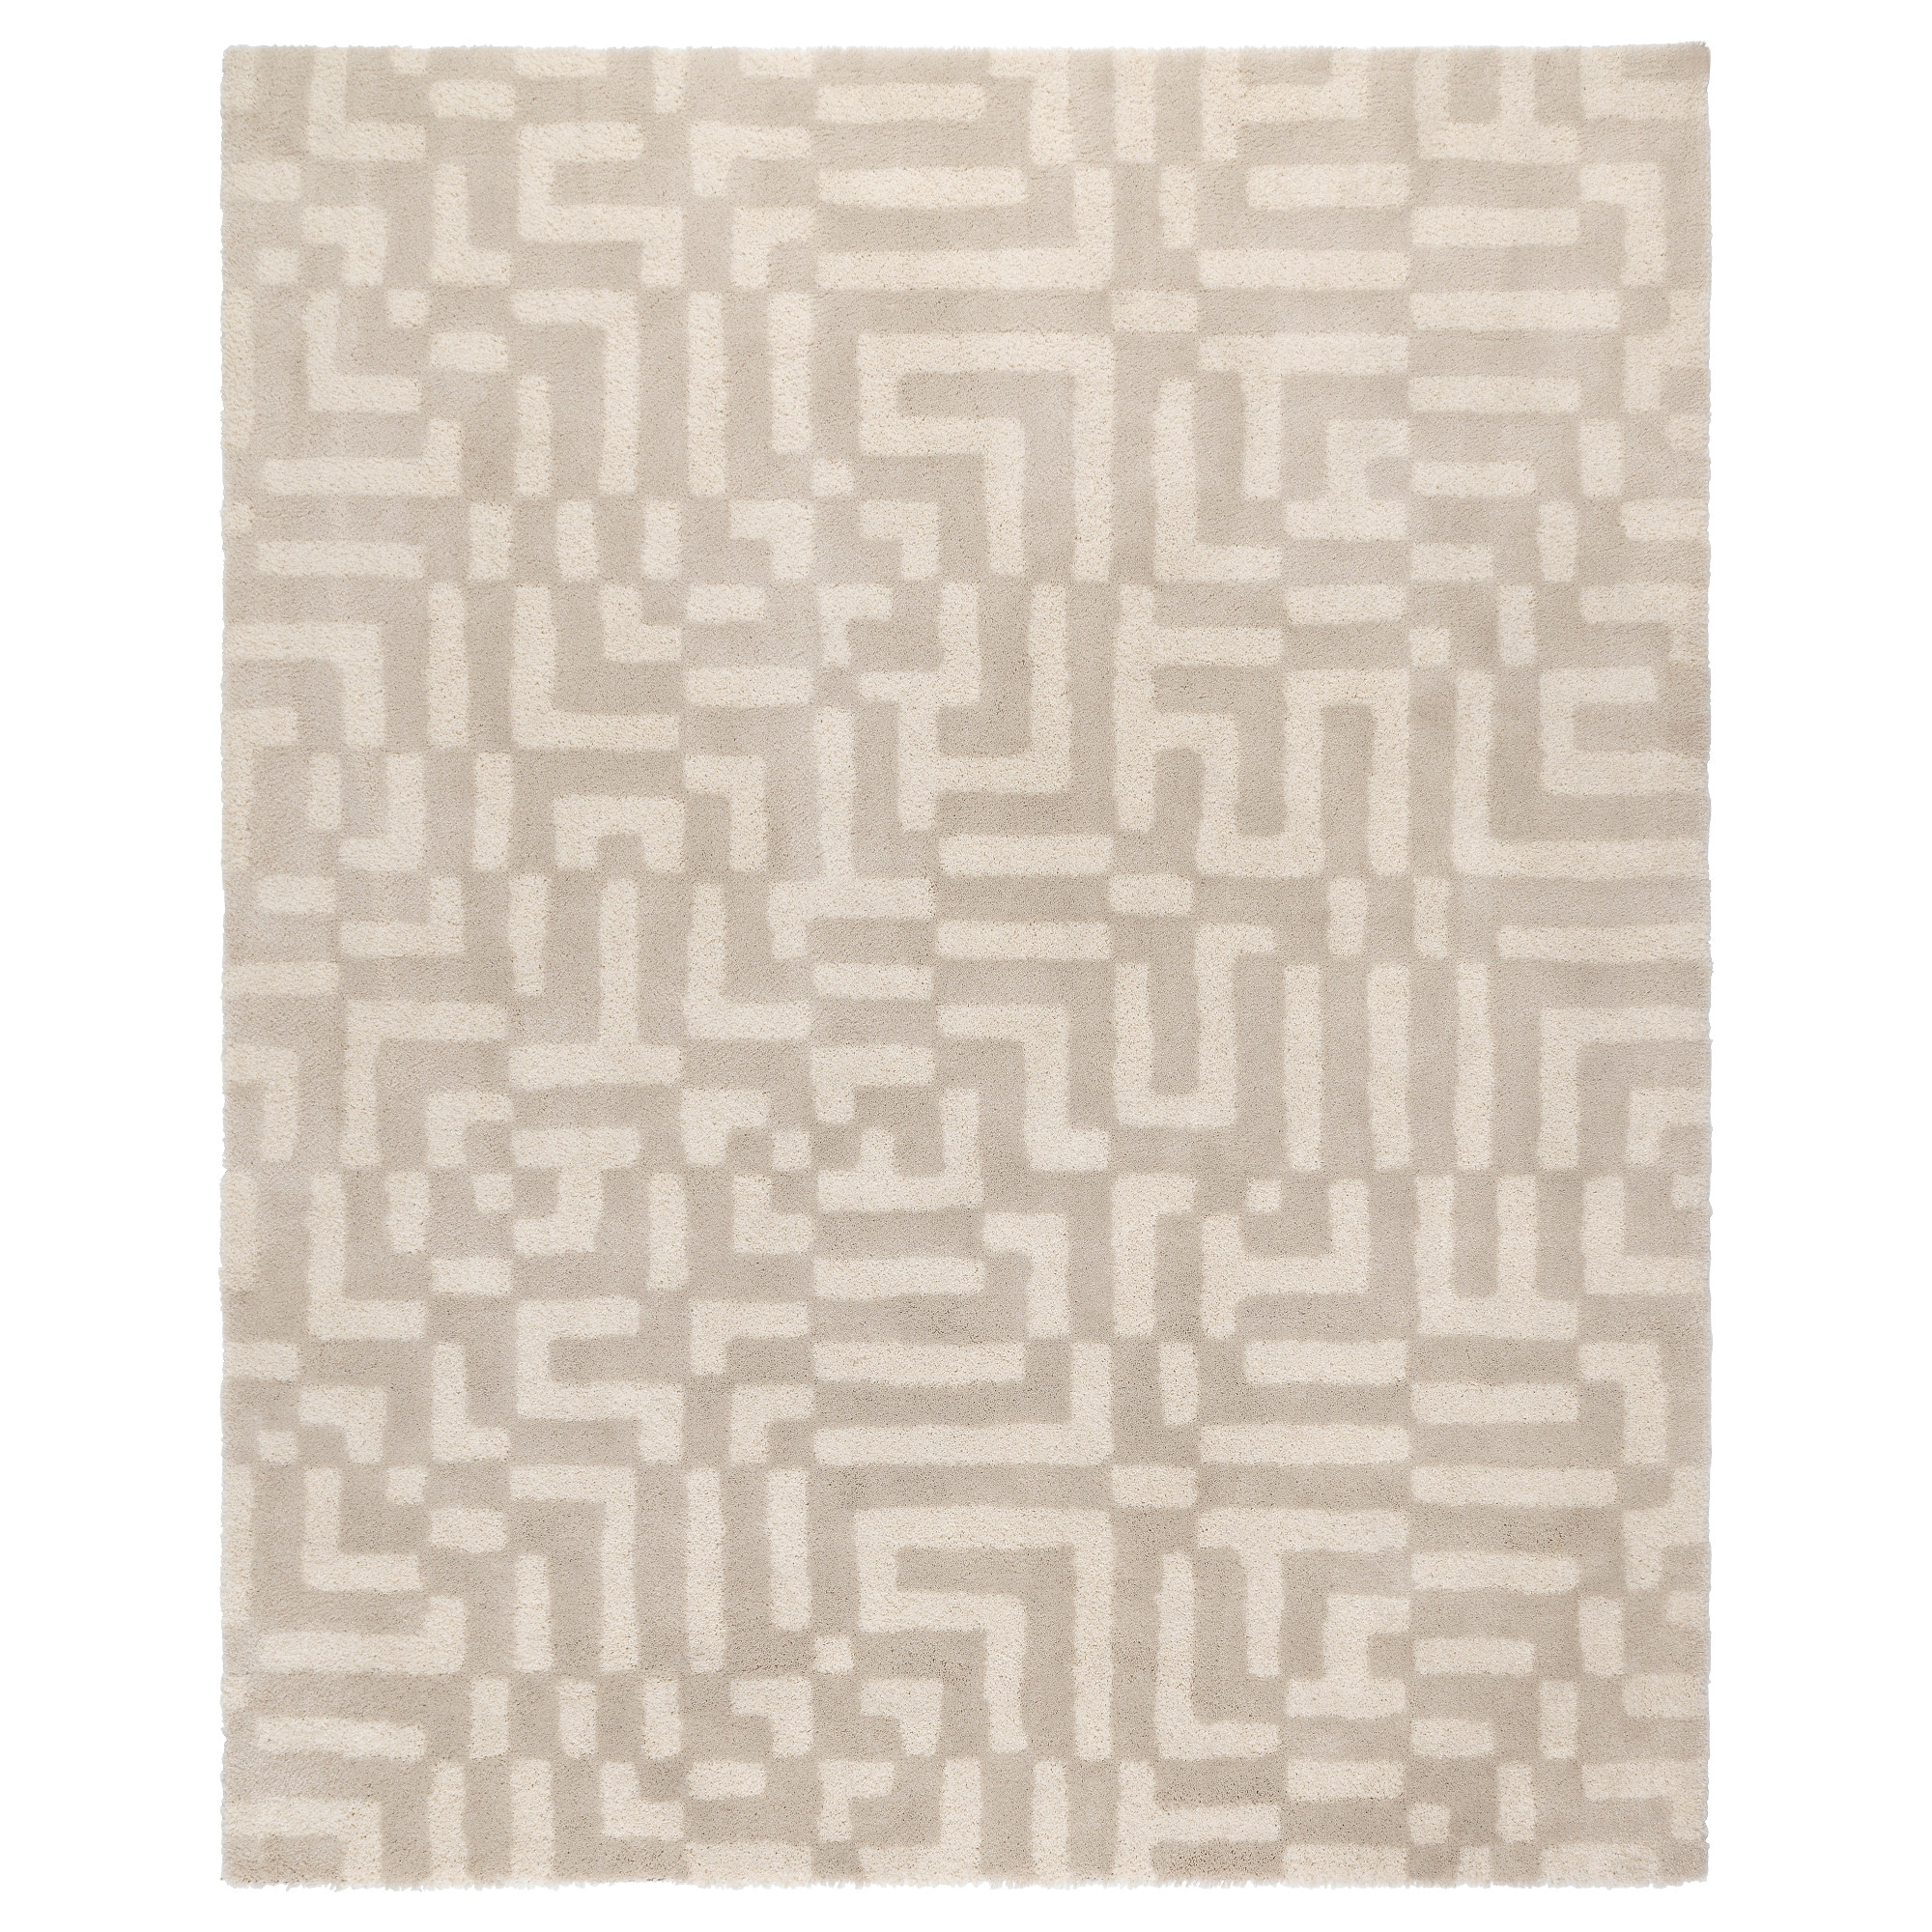 FAKSE rug, high pile, off-white Length: 8 ' 2